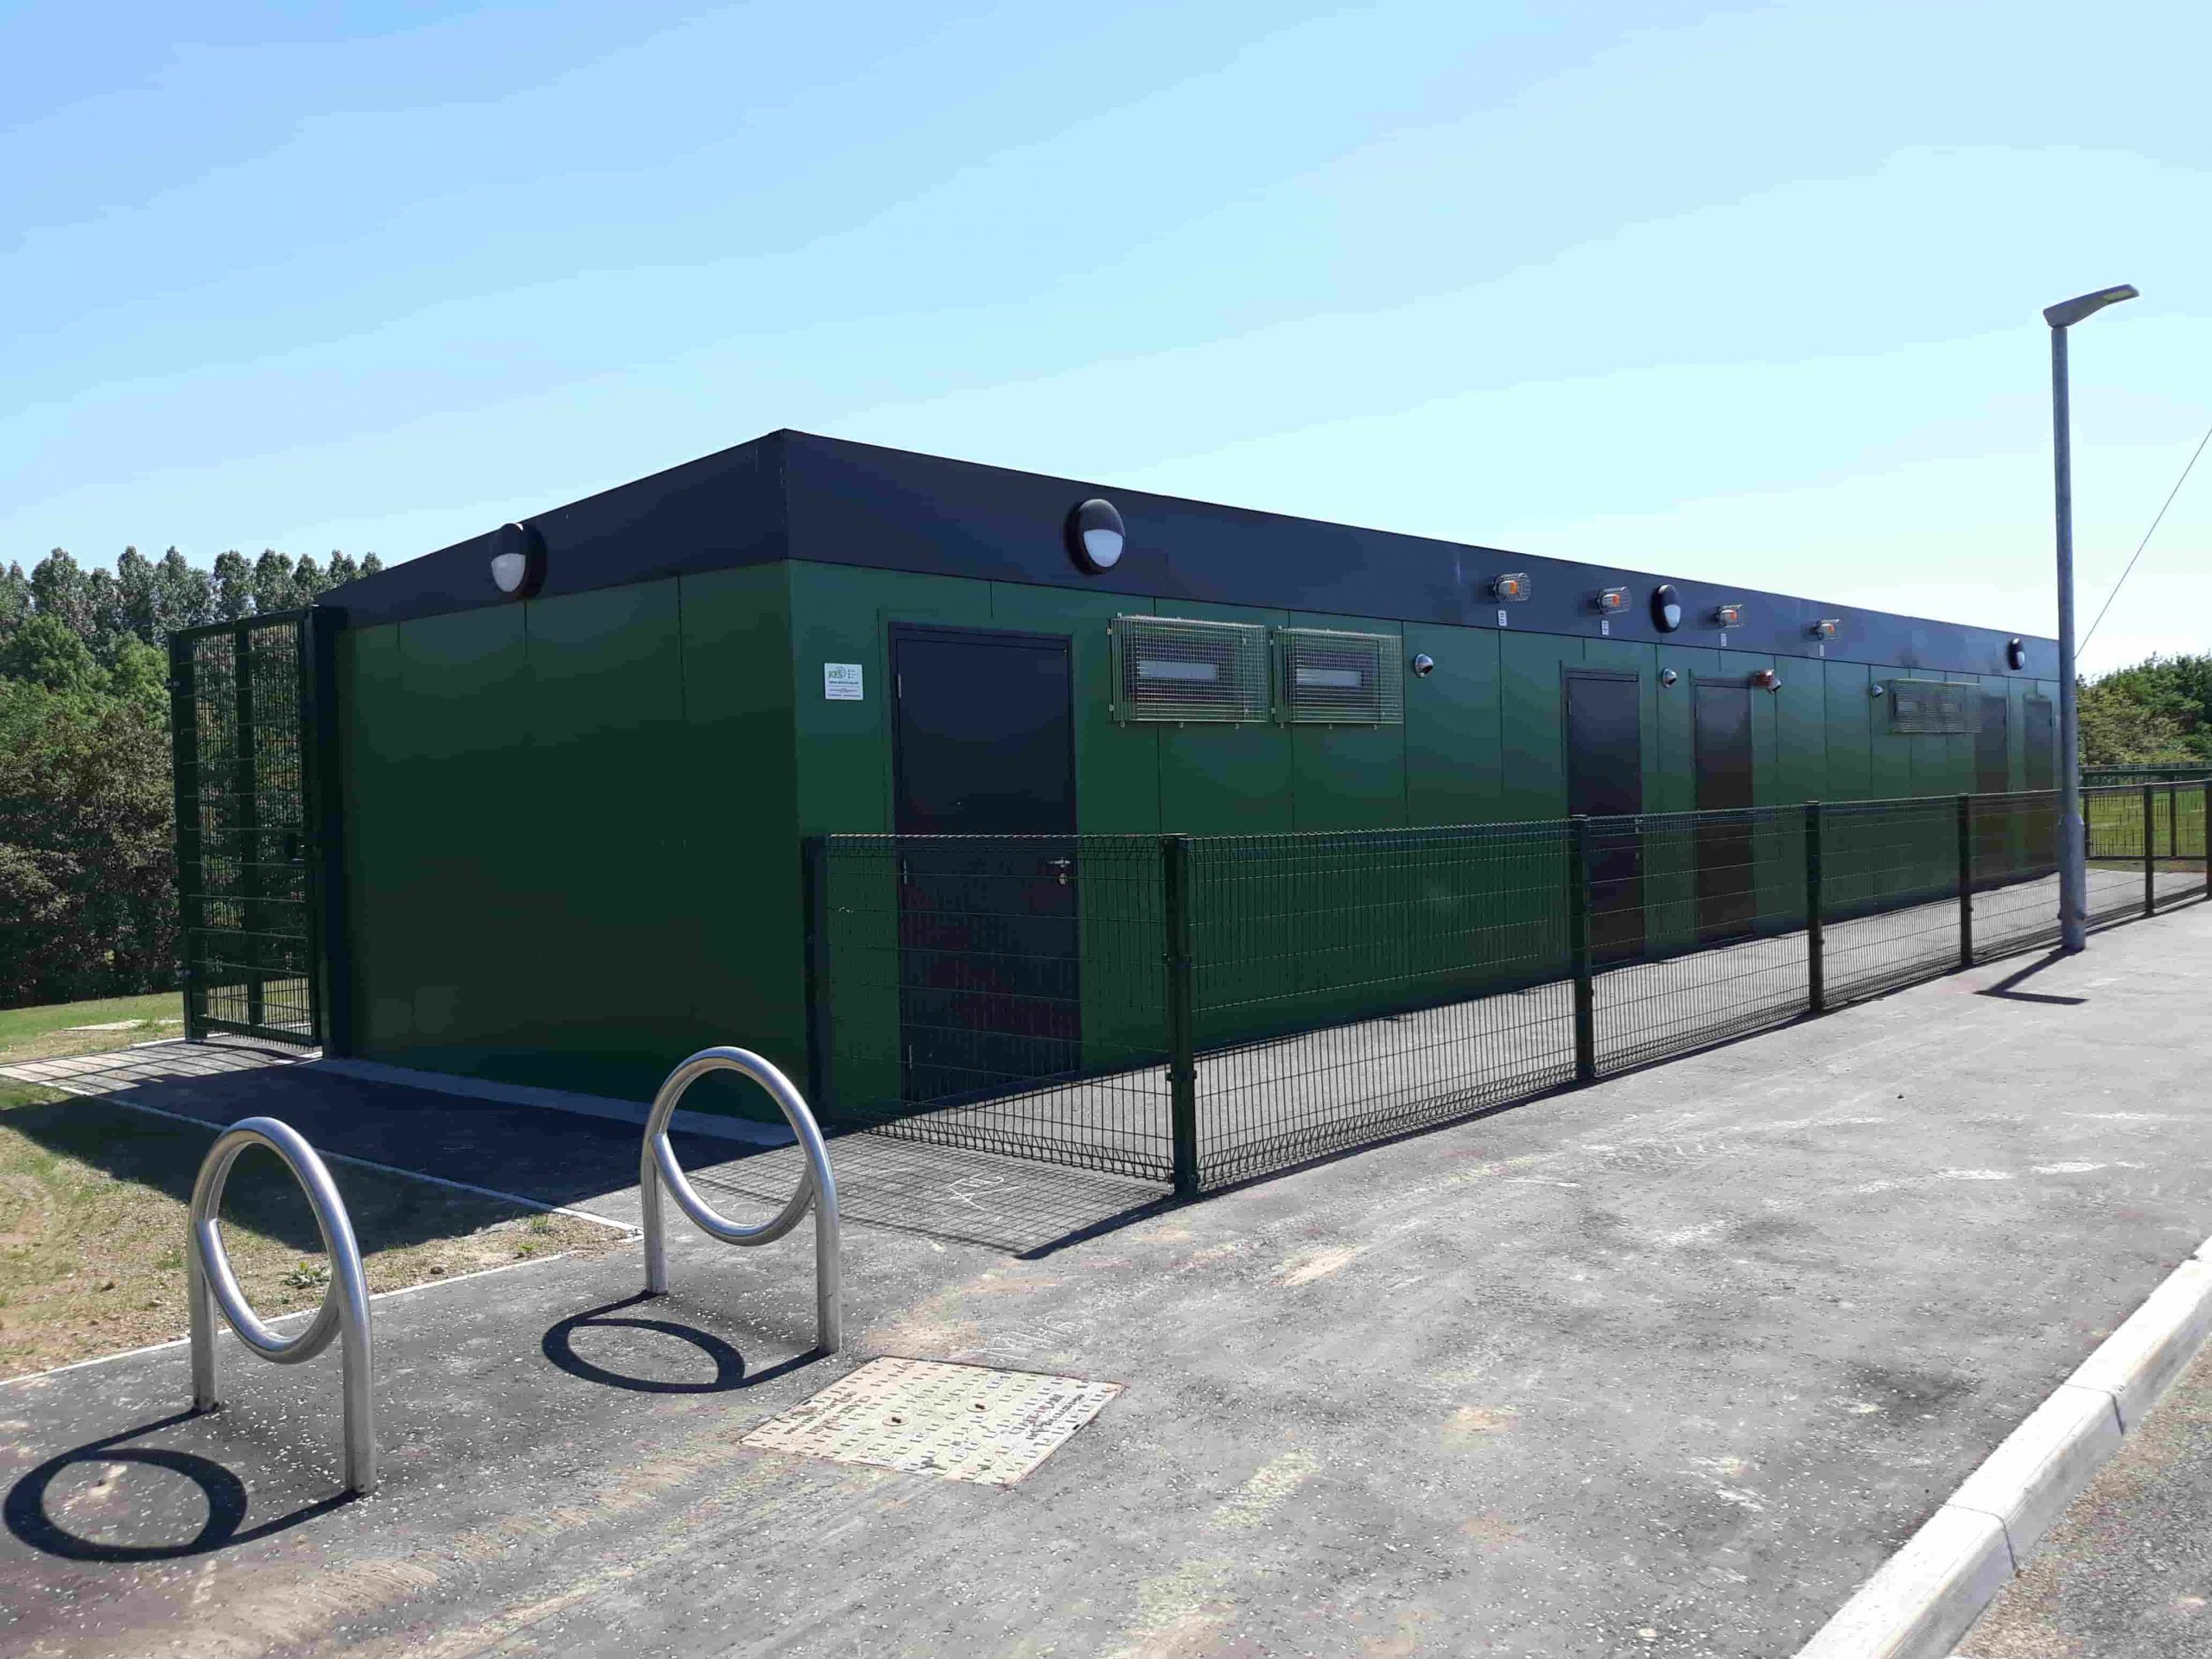 Modular changing rooms for Derry City & Strabane District Council